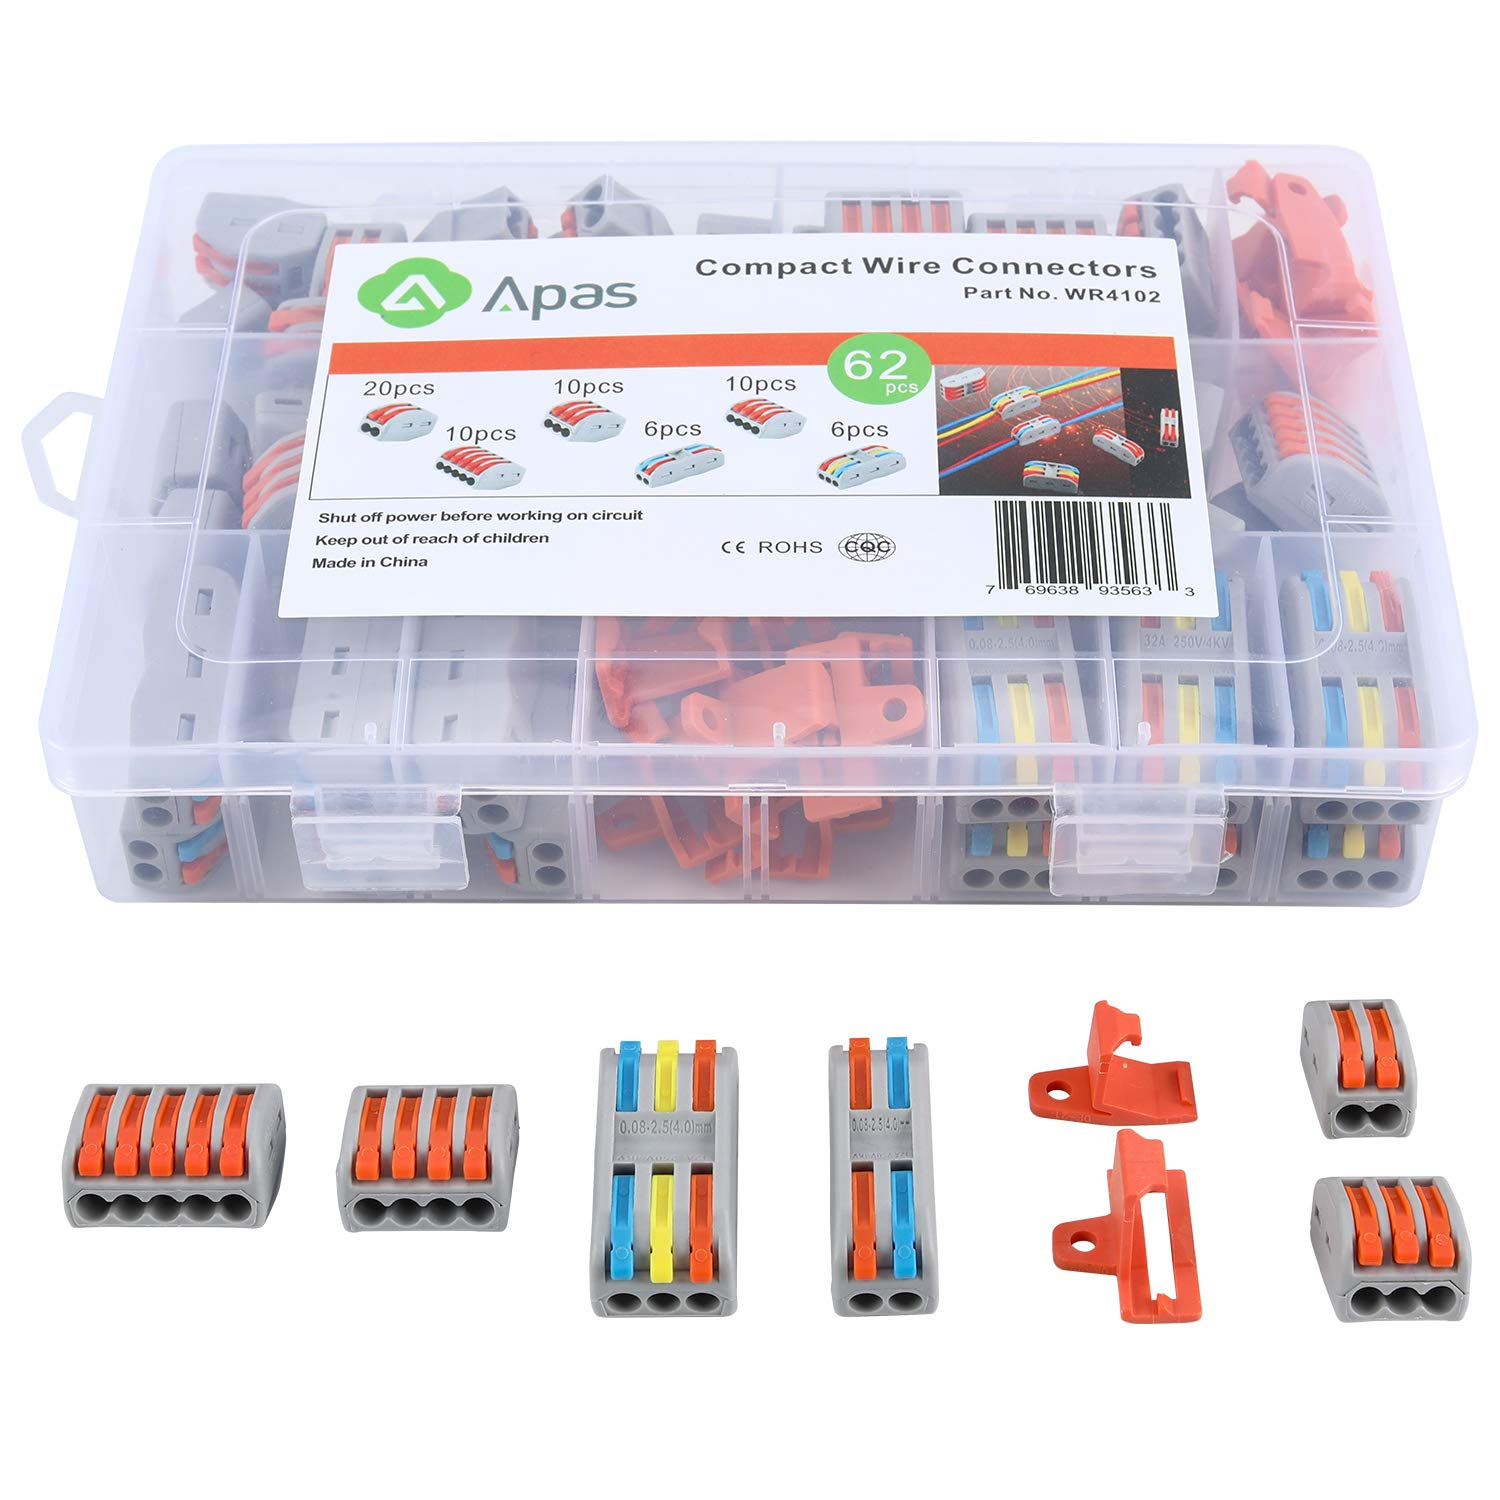 Pack of 62 Conductor Compact Splicing Connectors,Lever Nut Kit for Electrical Wires Solid Stranded Flexible Wires Wire Connect Lever-Nut